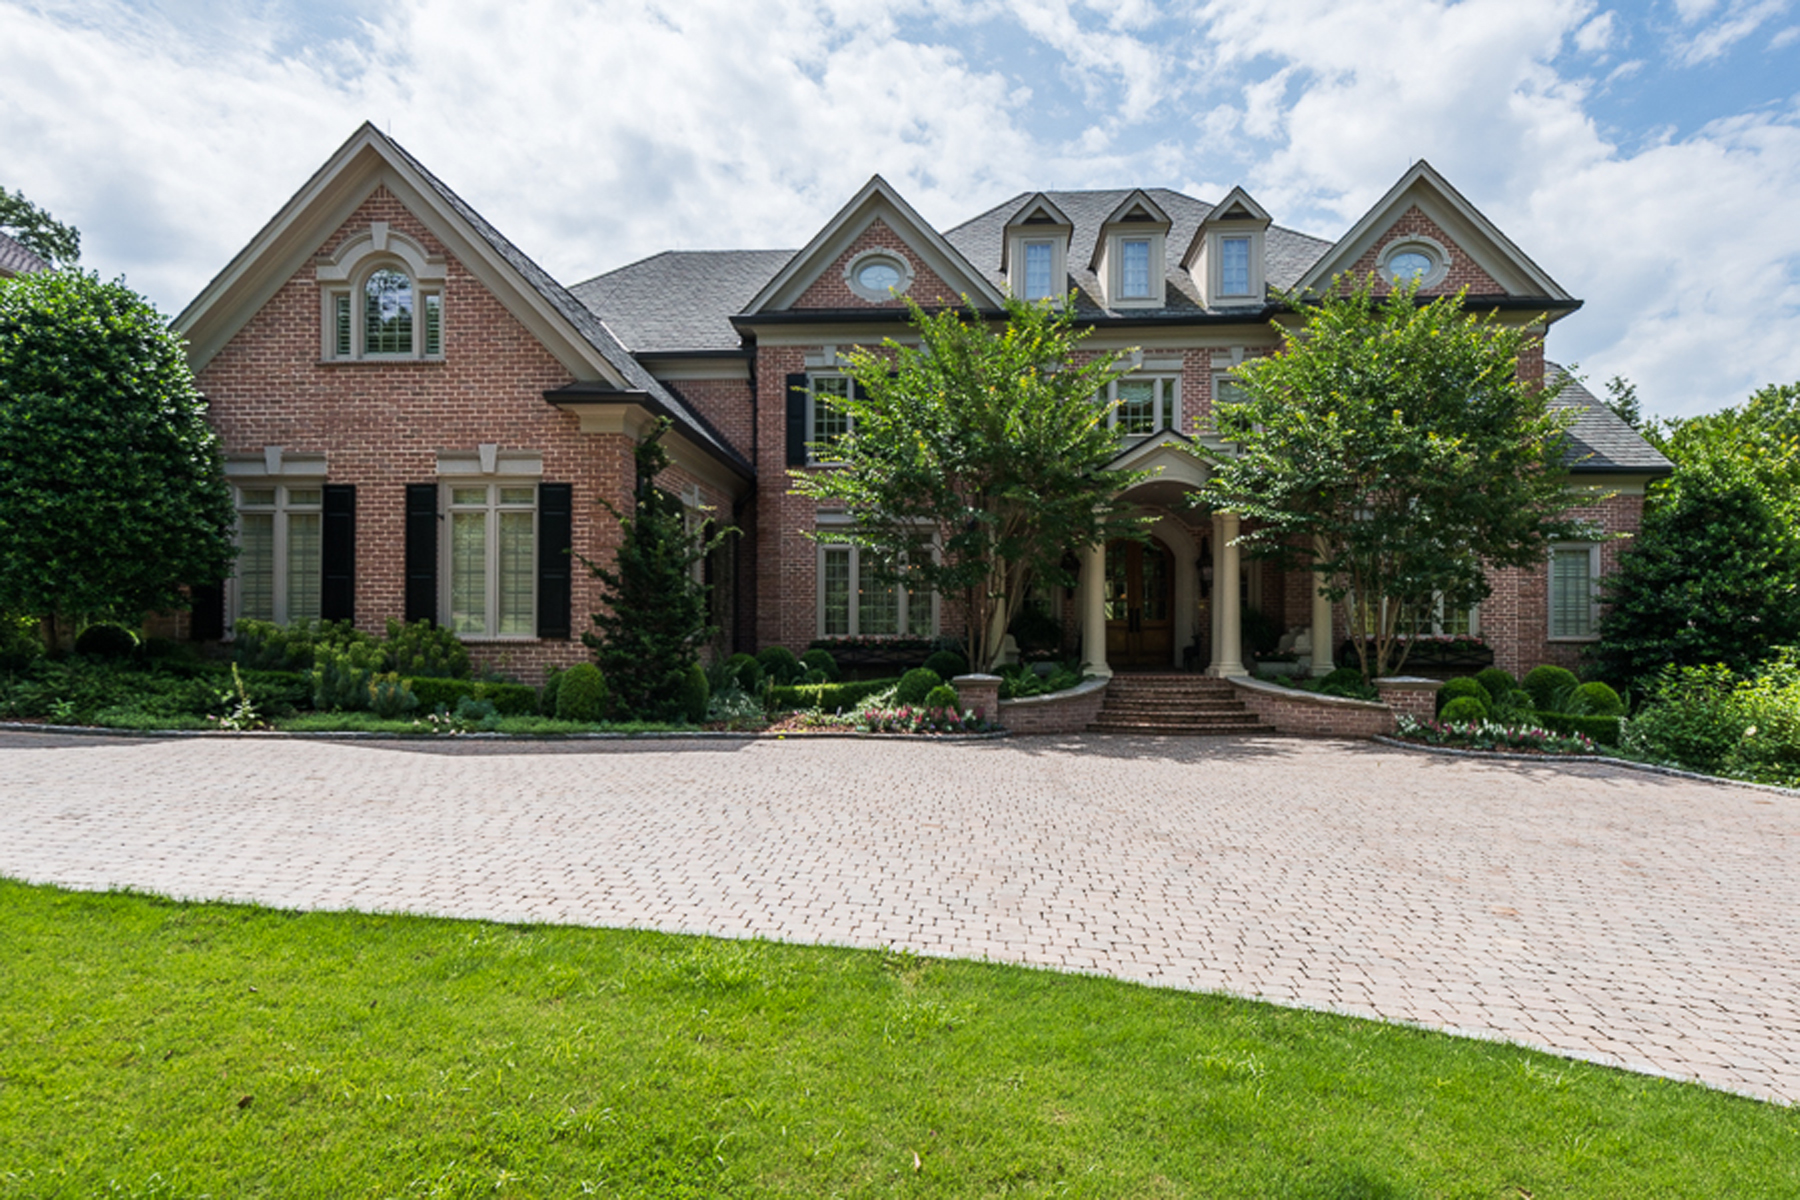 Maison unifamiliale pour l Vente à A Masterpiece In Johns Creek Most Prestigious Gated Golf Community 490 Covington Cove Alpharetta, Georgia 30022 États-Unis